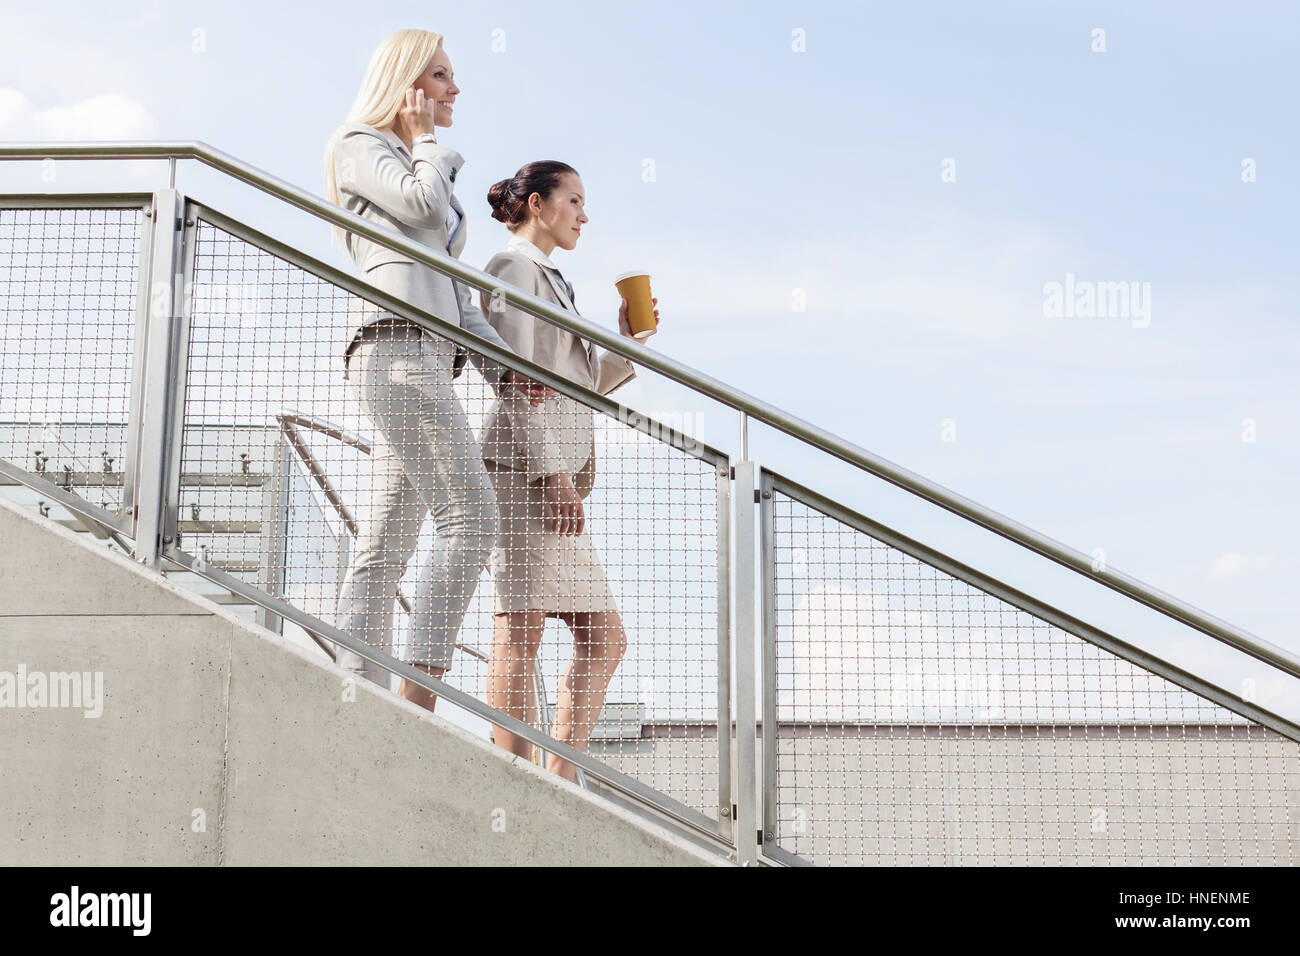 Profile shot of businesswomen moving down stairs against sky - Stock Image